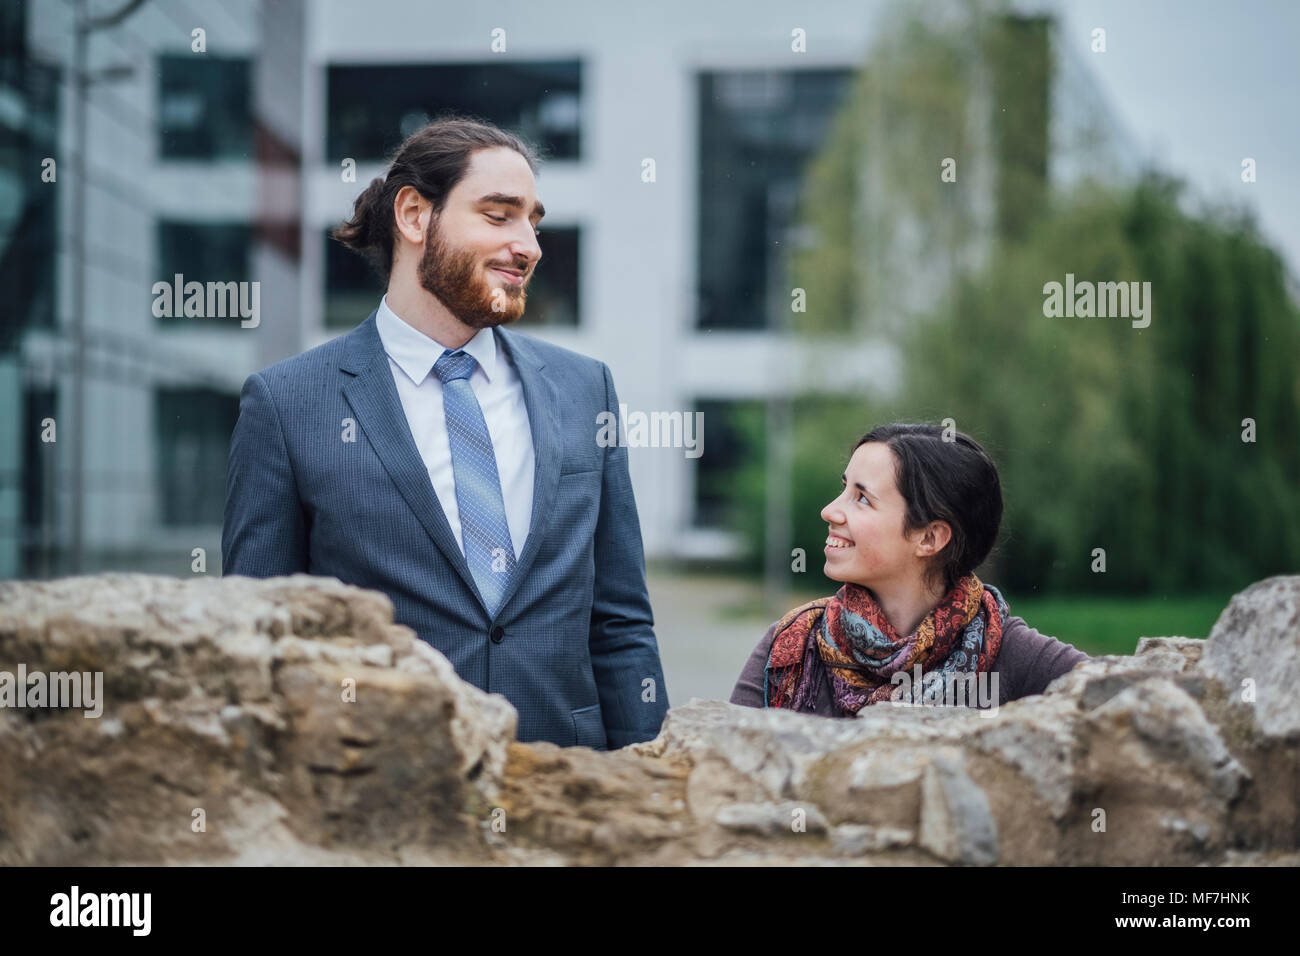 Smiling businessman and woman behind a wall outside office building - Stock Image